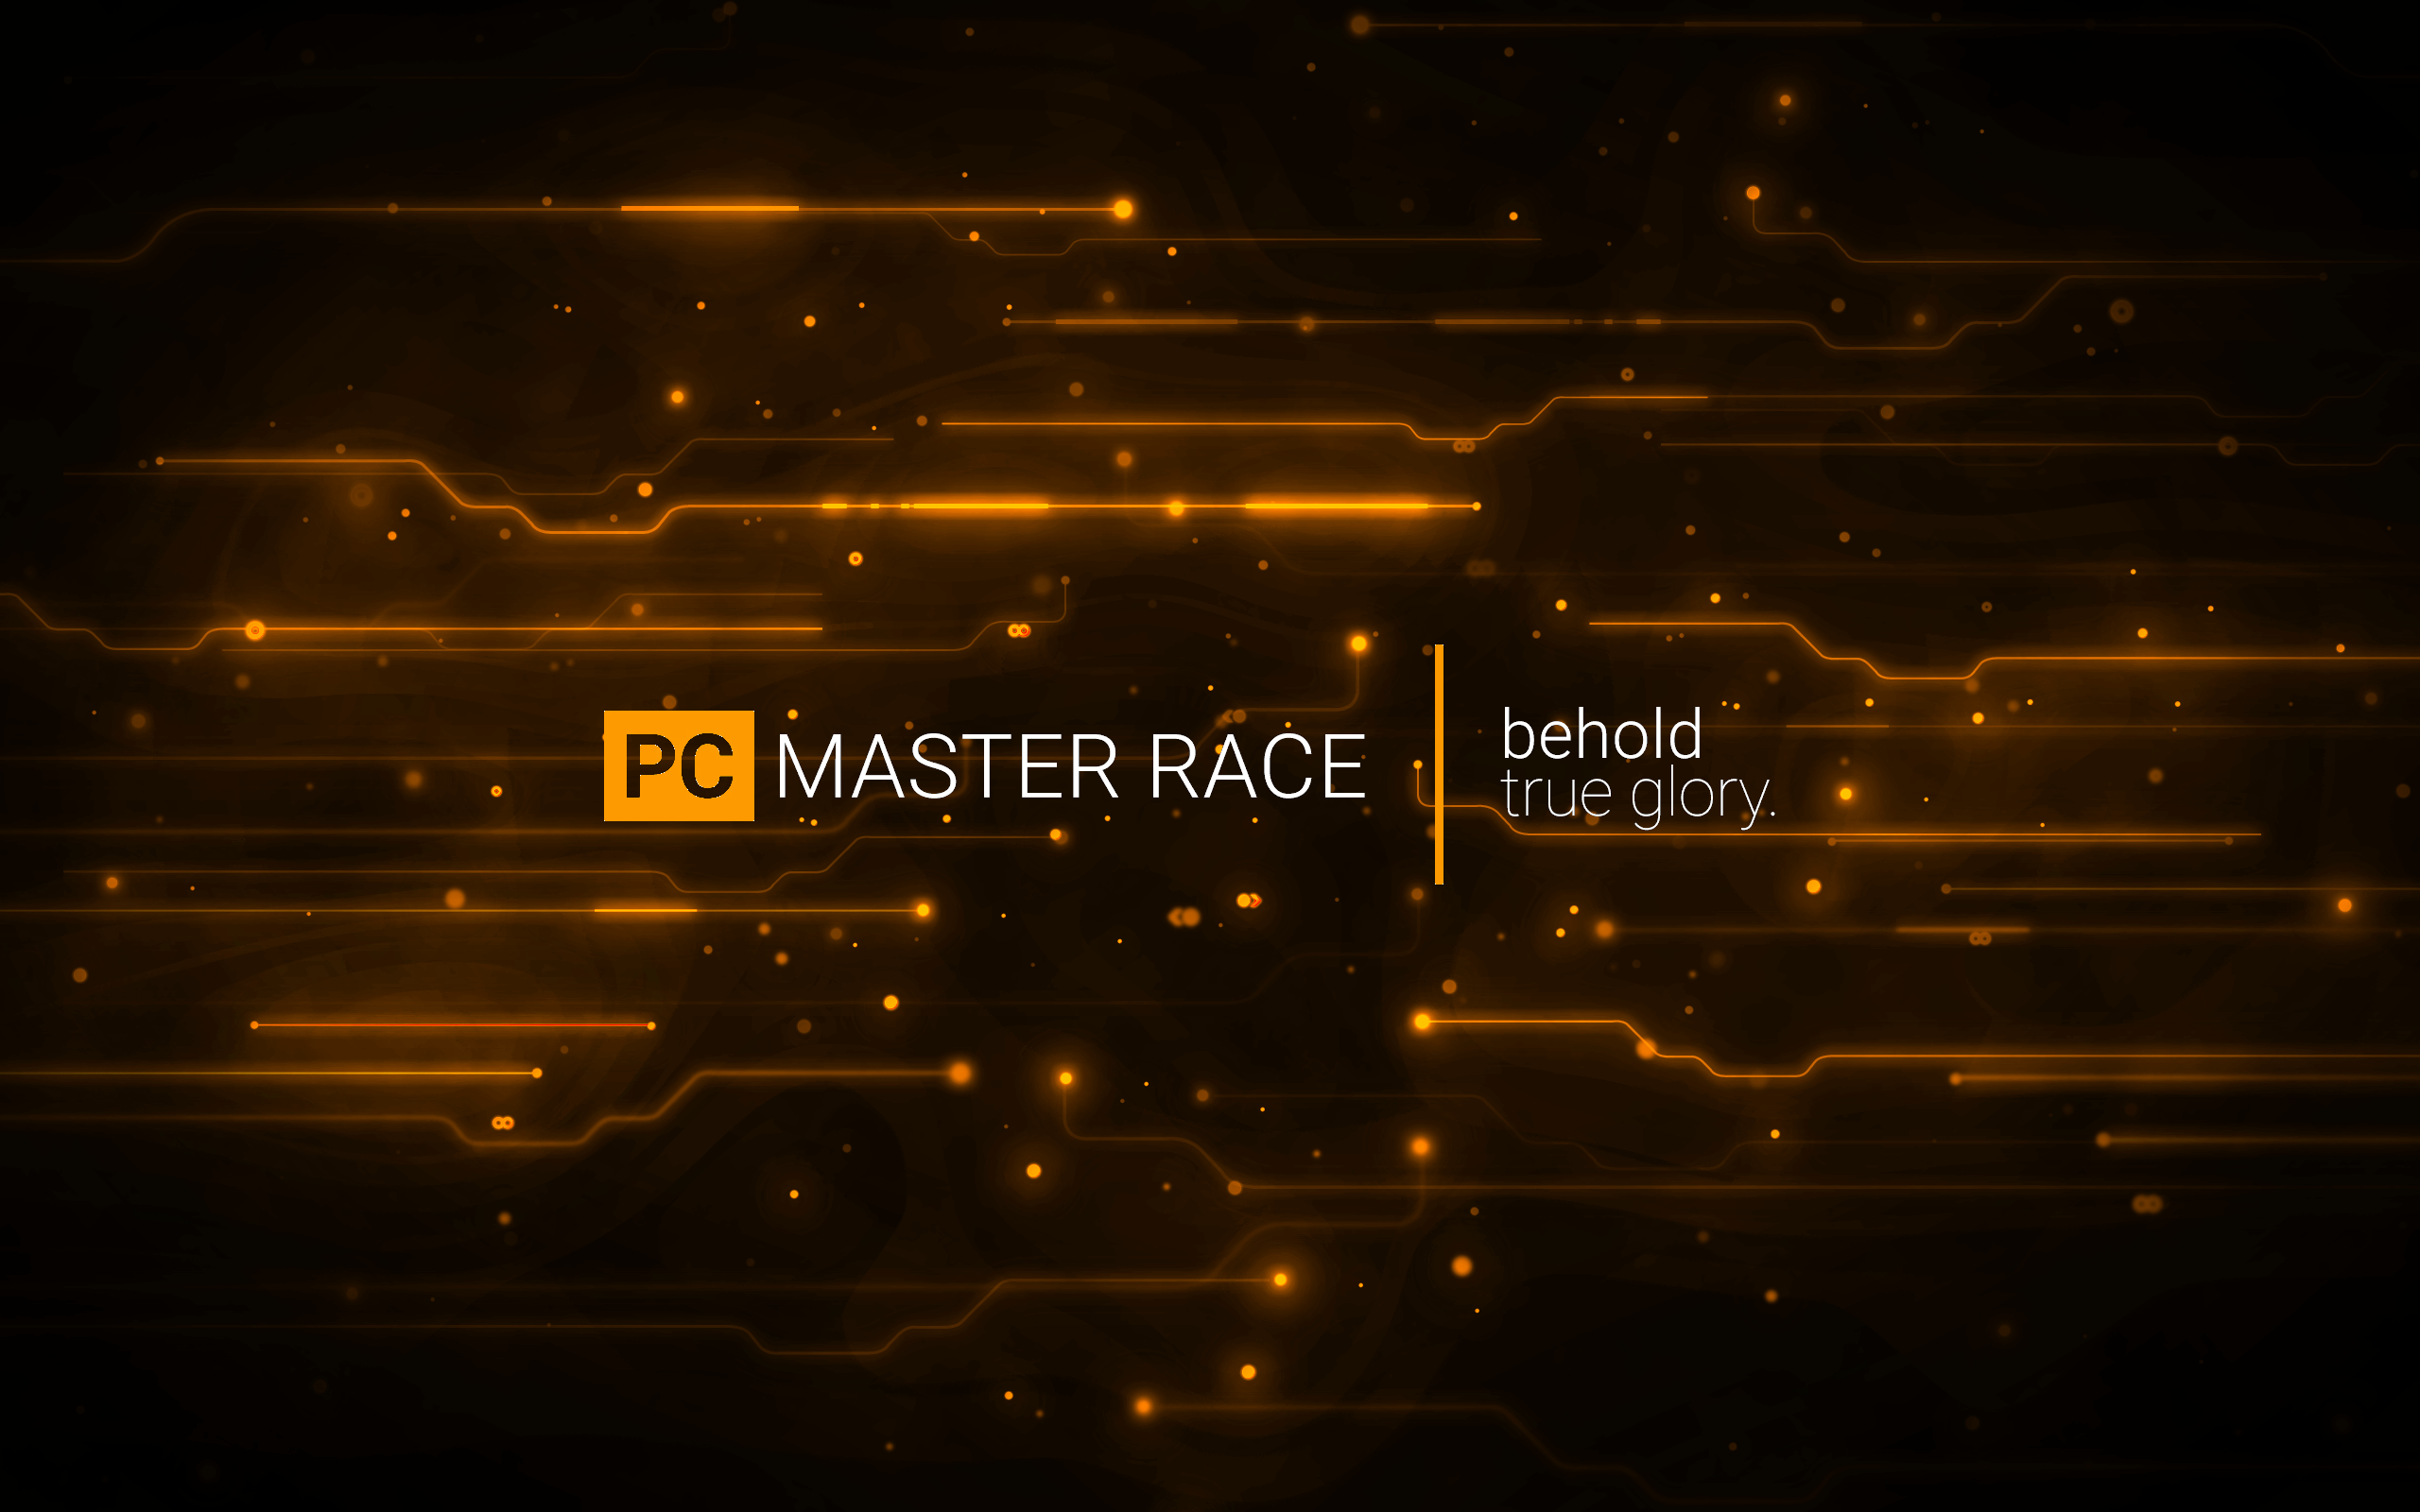 5 Pc Master Race Hd Wallpapers Background Images Wallpaper Abyss